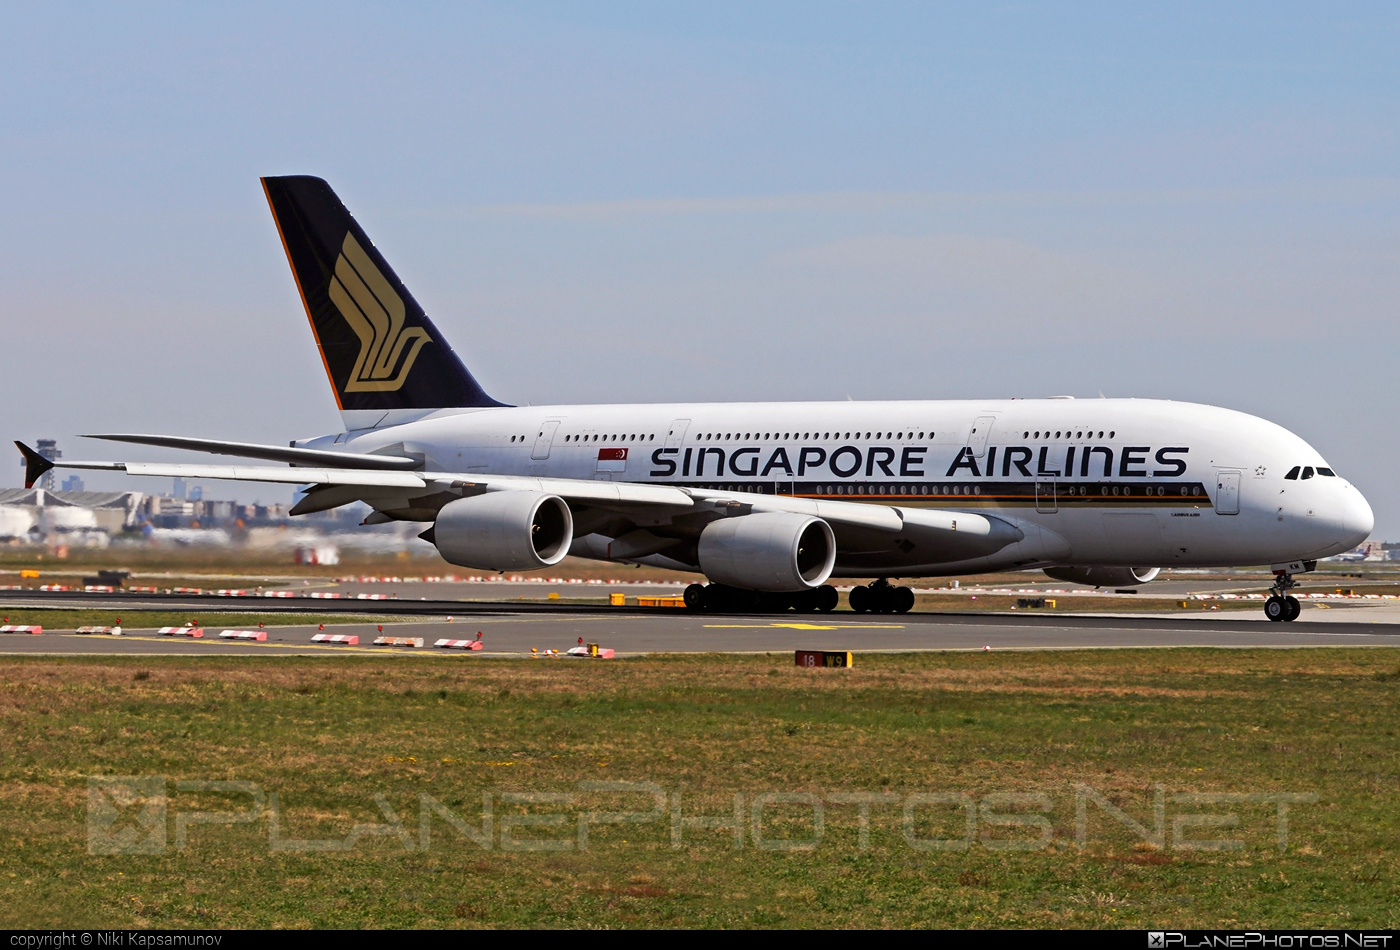 Airbus A380-841 - 9V-SKM operated by Singapore Airlines #a380 #a380family #airbus #airbus380 #singaporeairlines